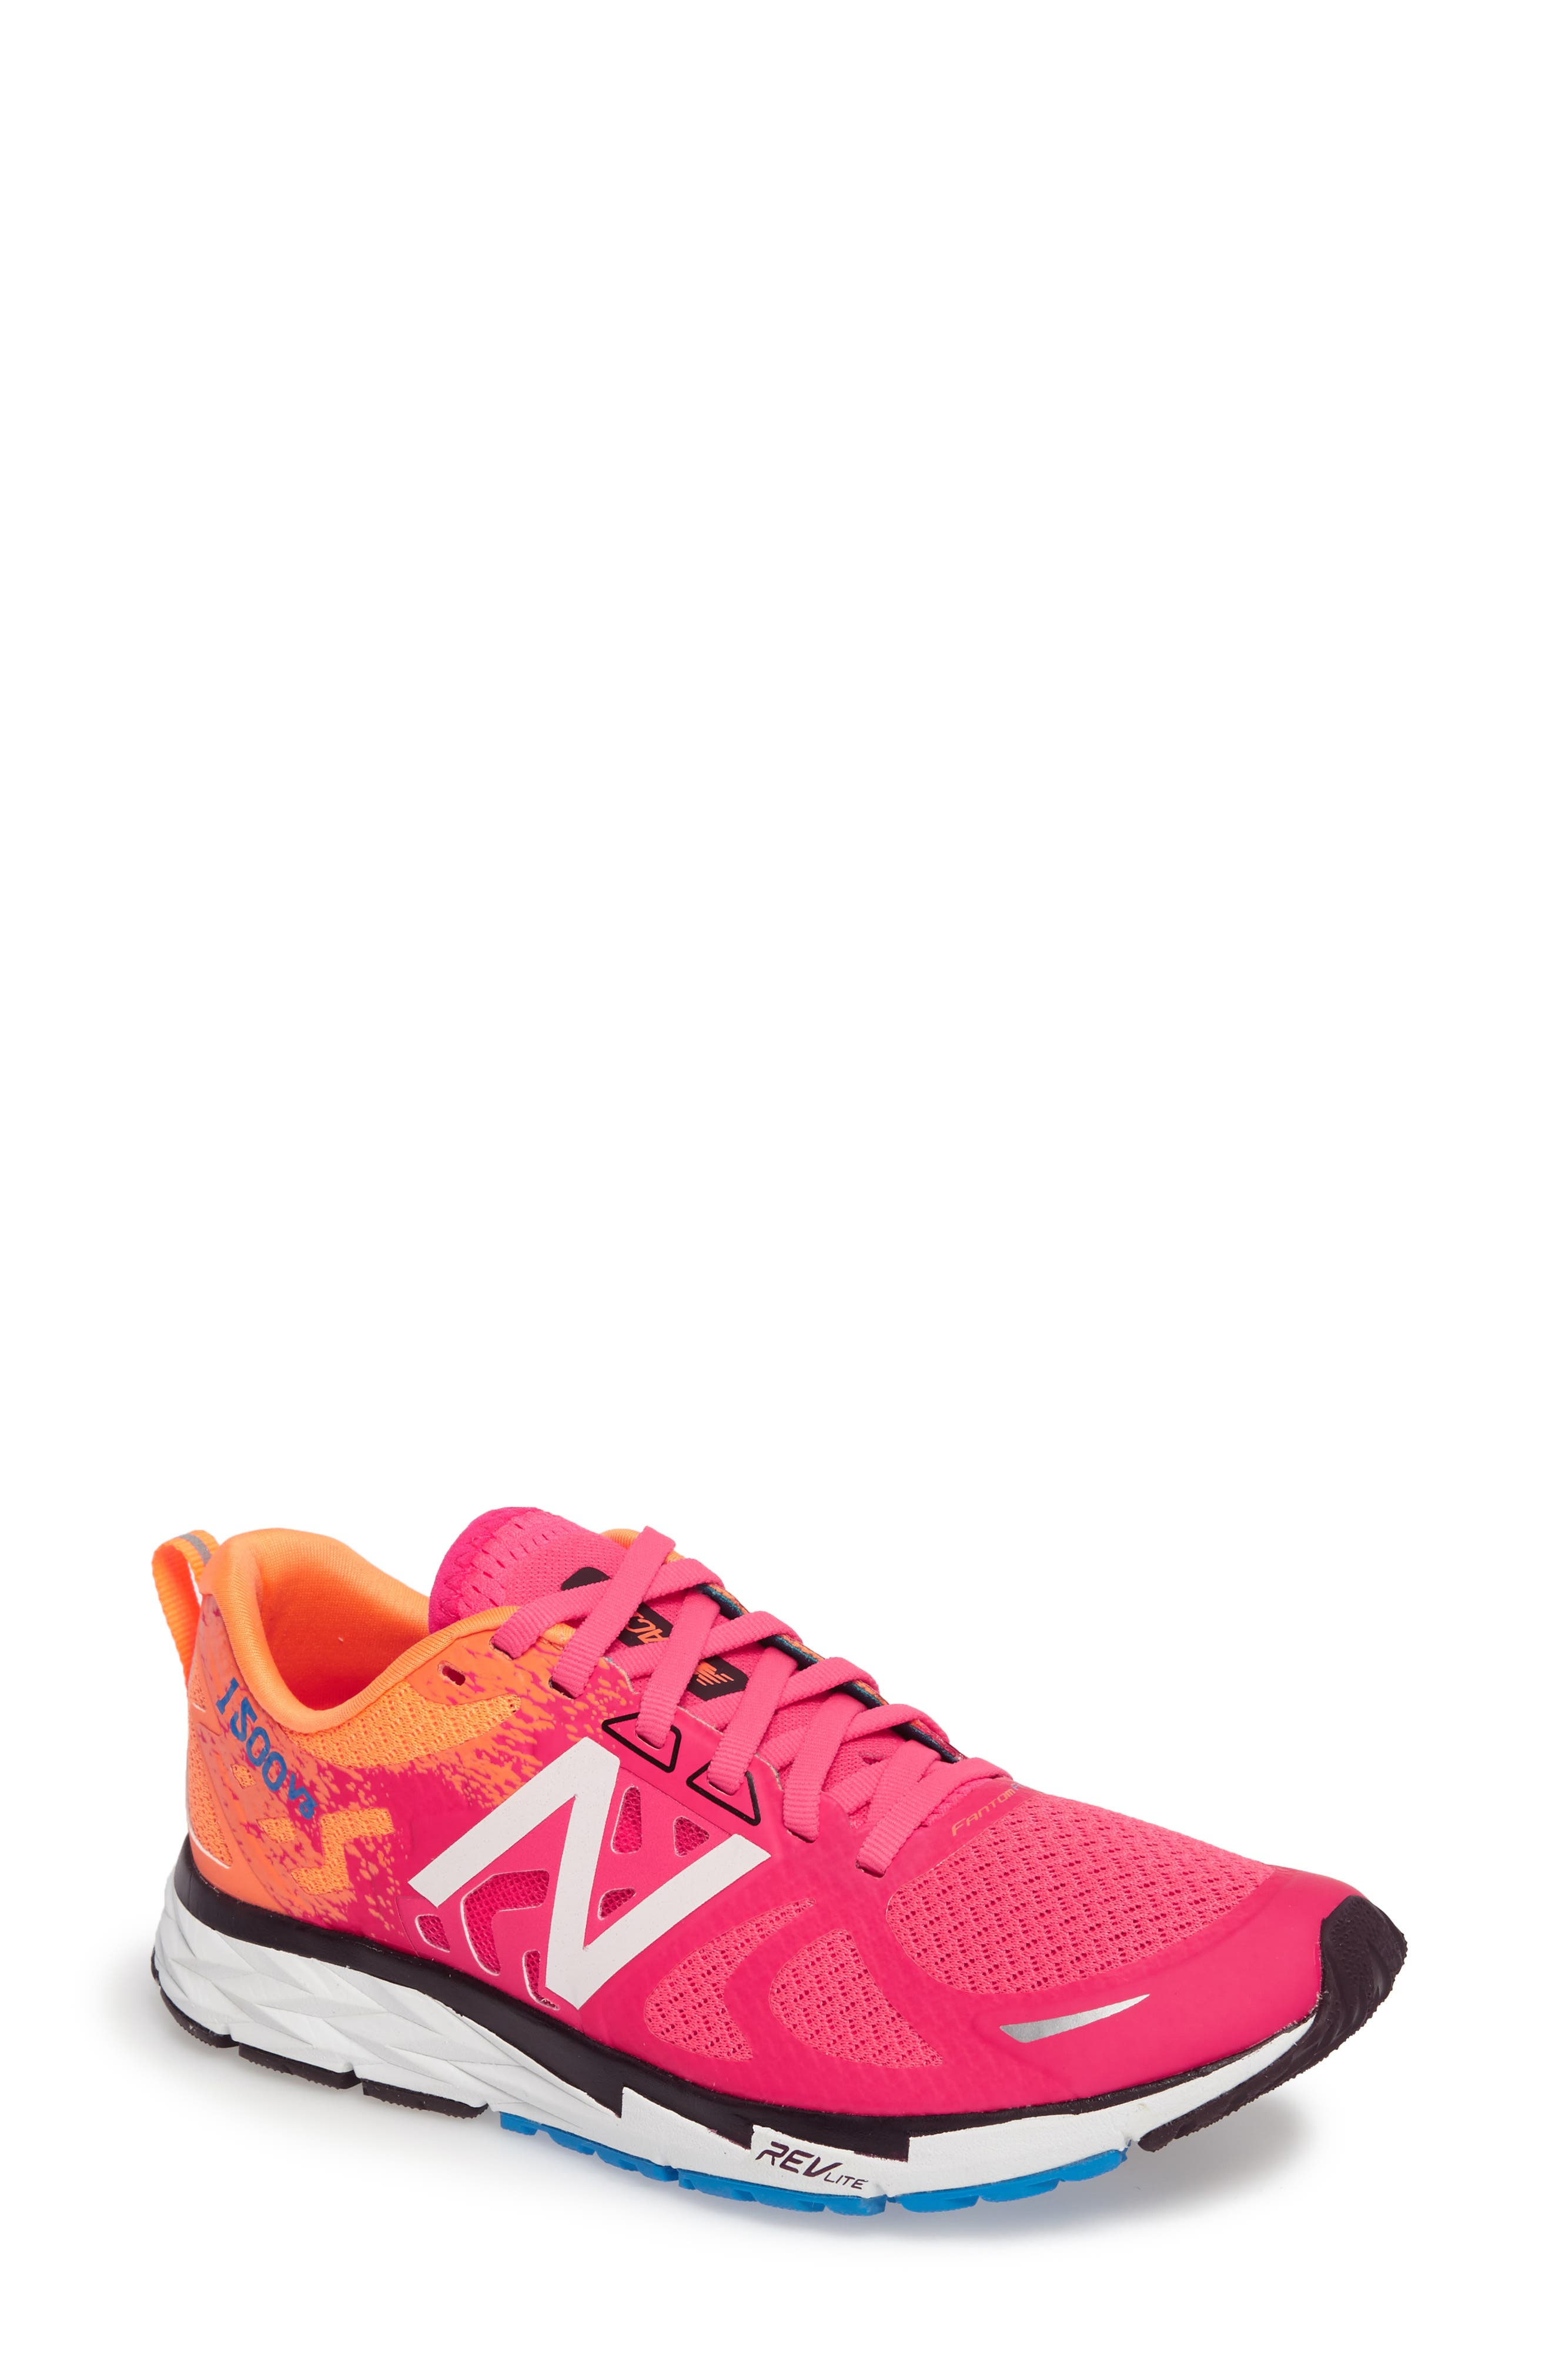 '1500' Running Shoe,                         Main,                         color, 950